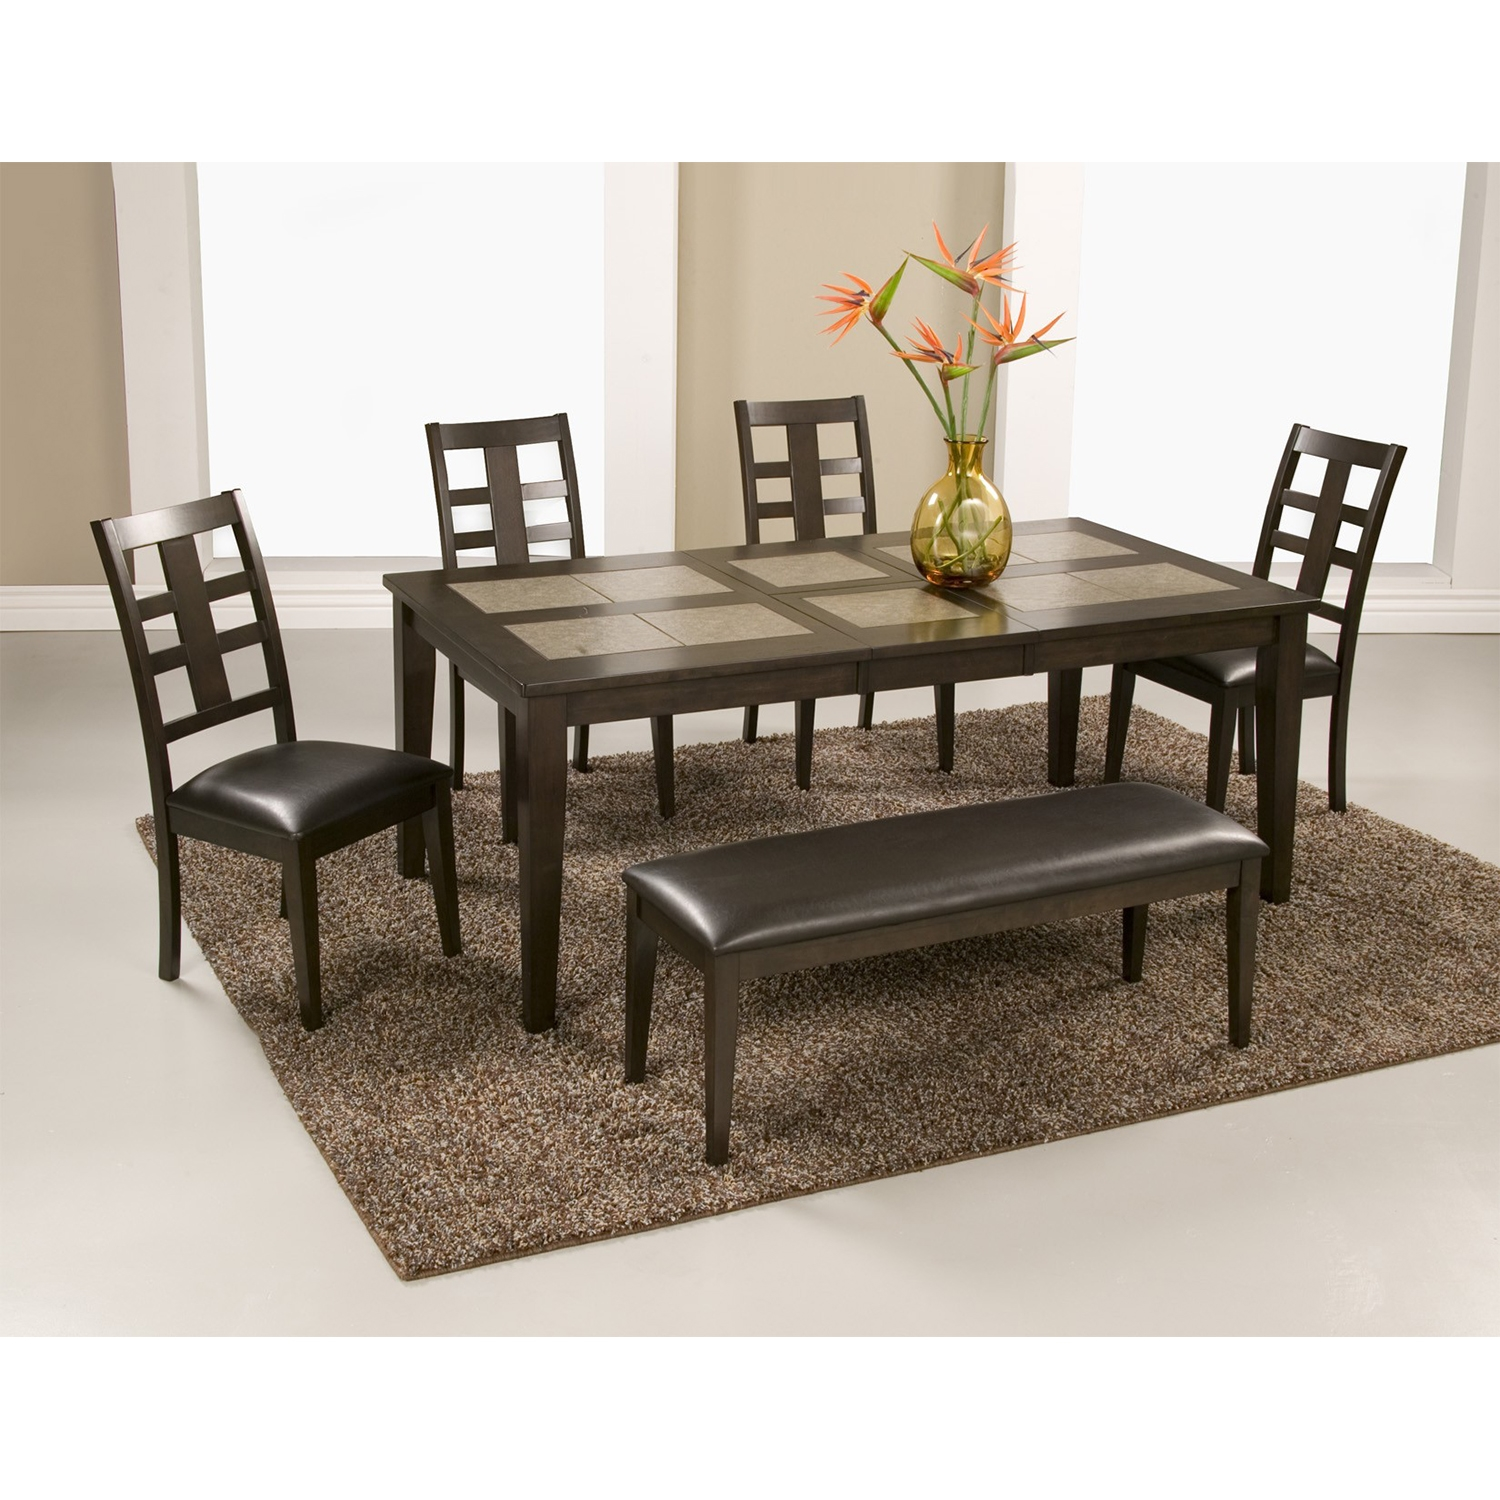 Piedmont 6-Piece Dining Set - Dark Walnut